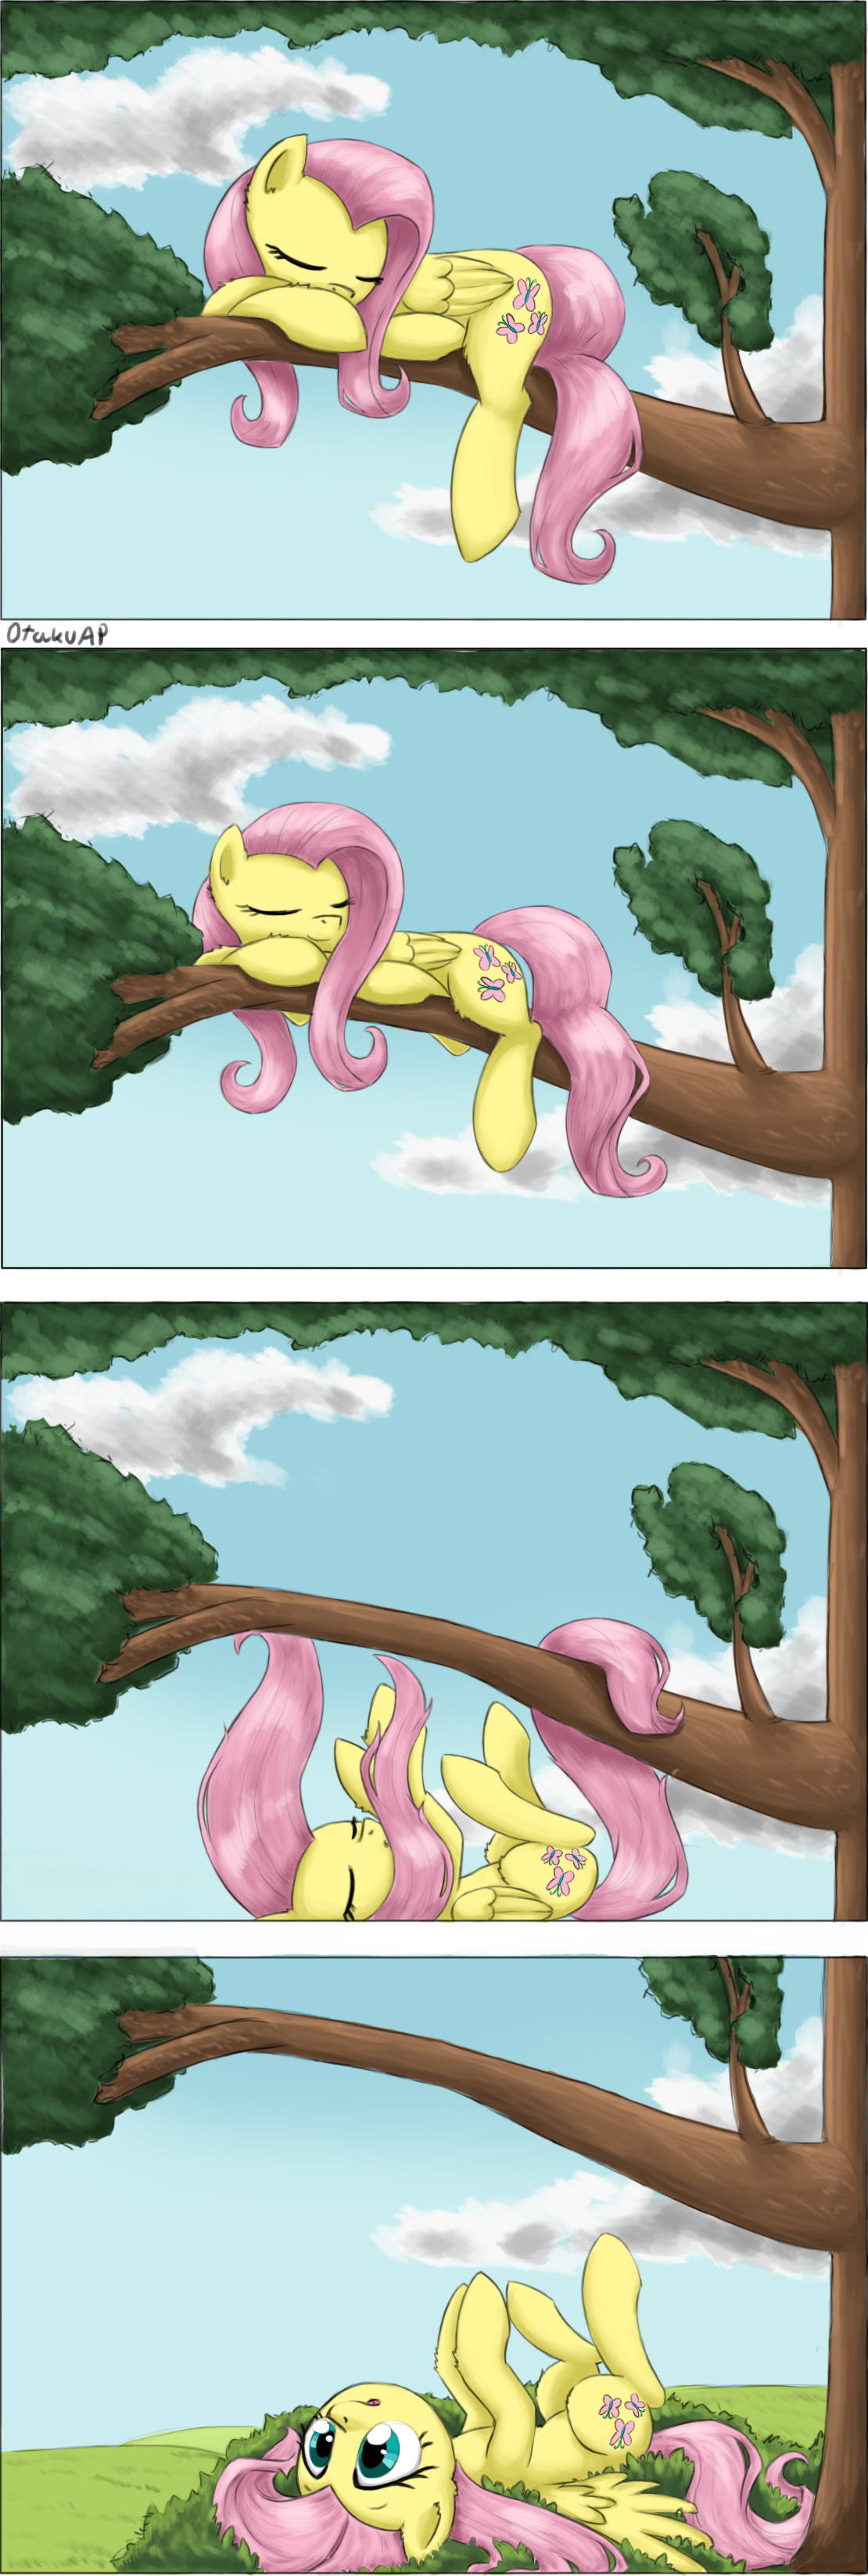 Fluttercomic by otakuap